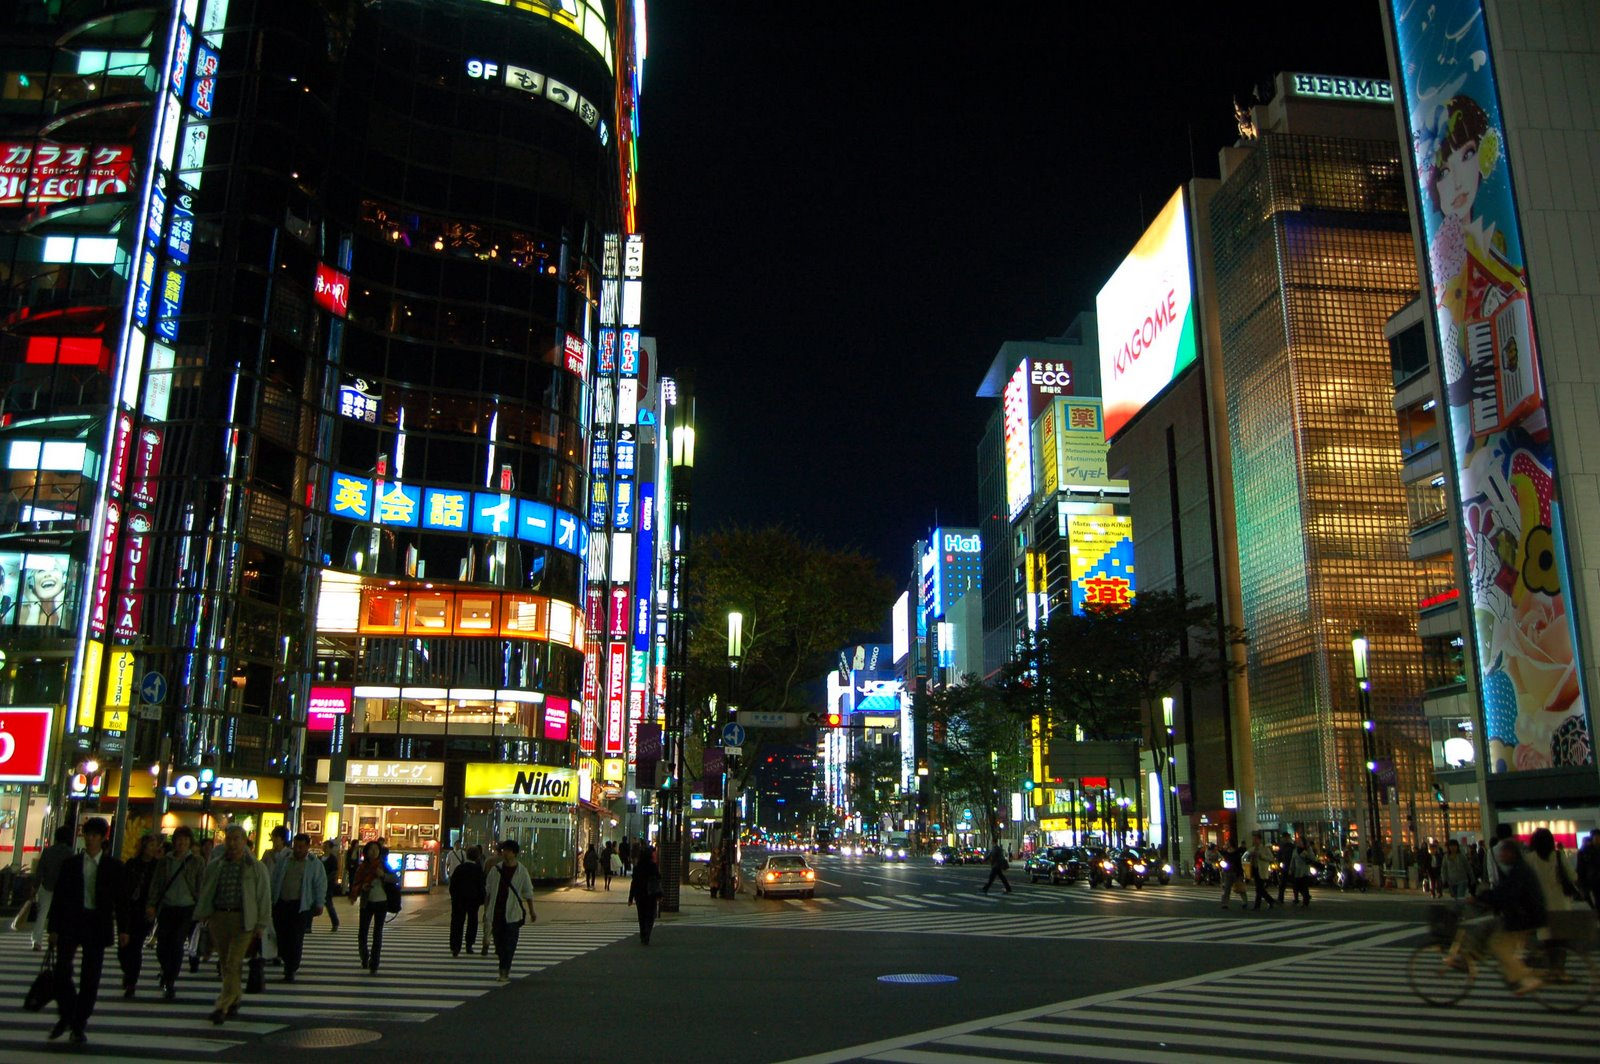 Tokyo travel guide area by area Ginza youinJapannet